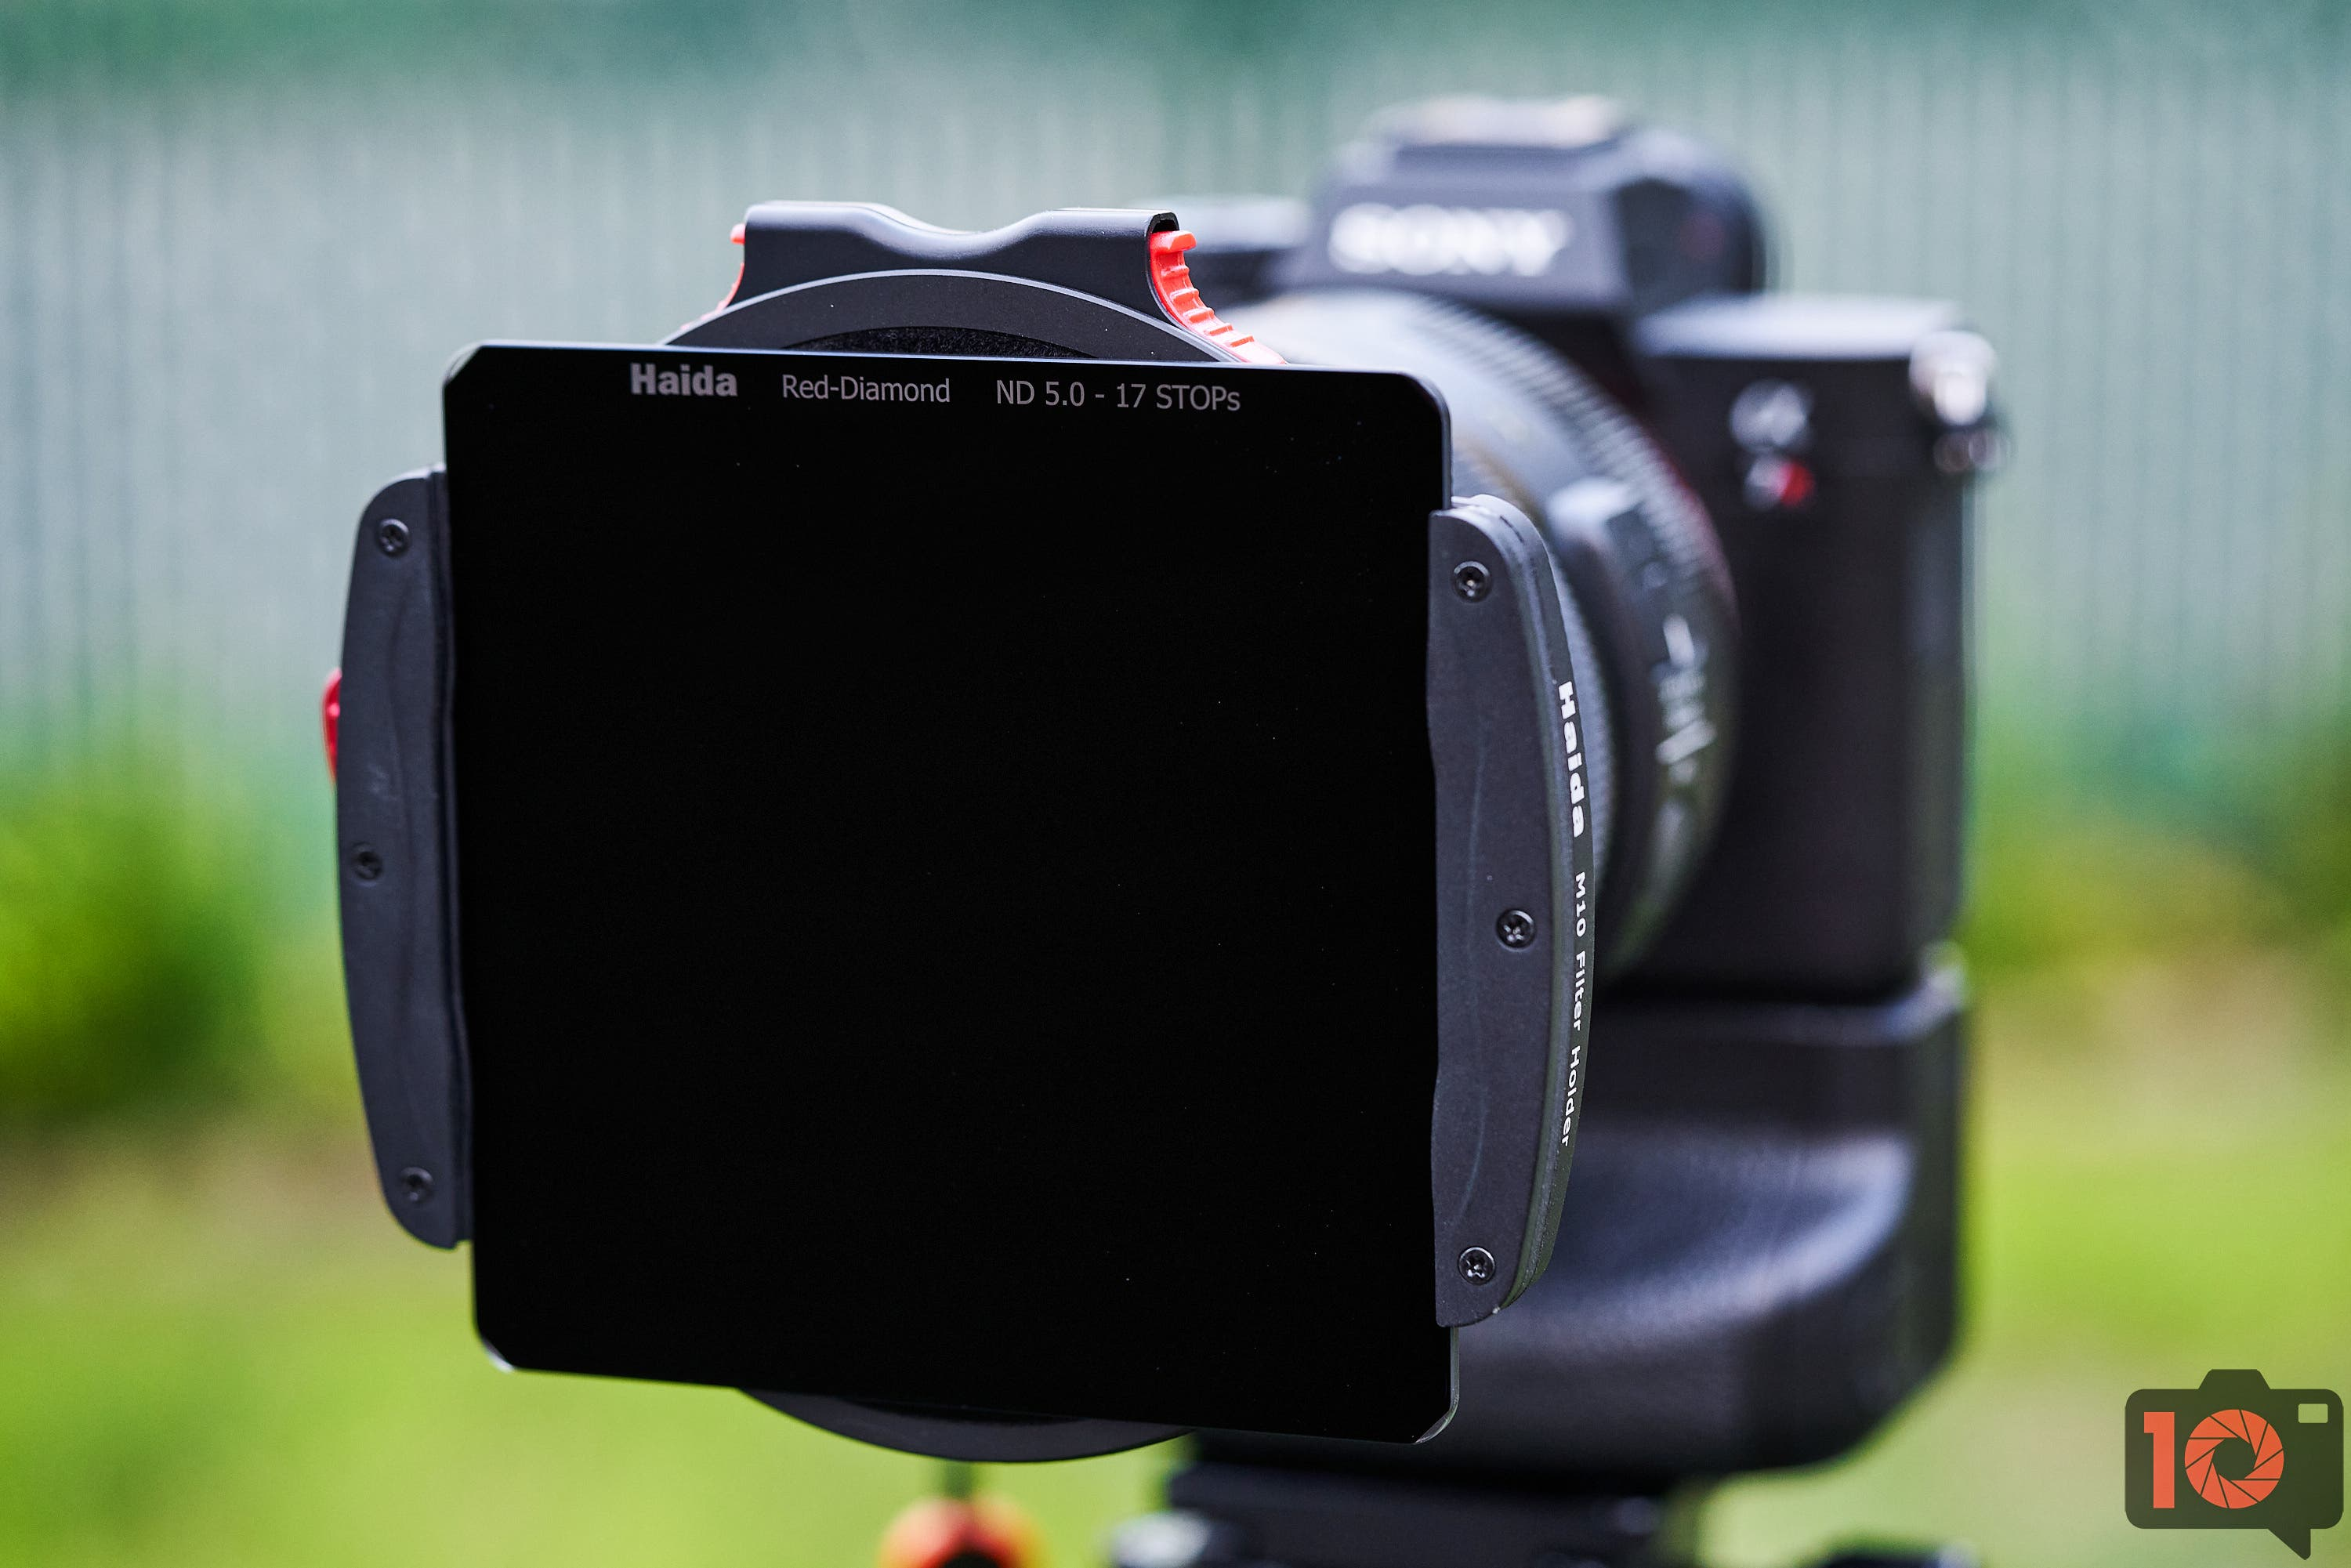 Long Exposures Made Easy: Haida 17 Stop ND 5.0 Filter Review